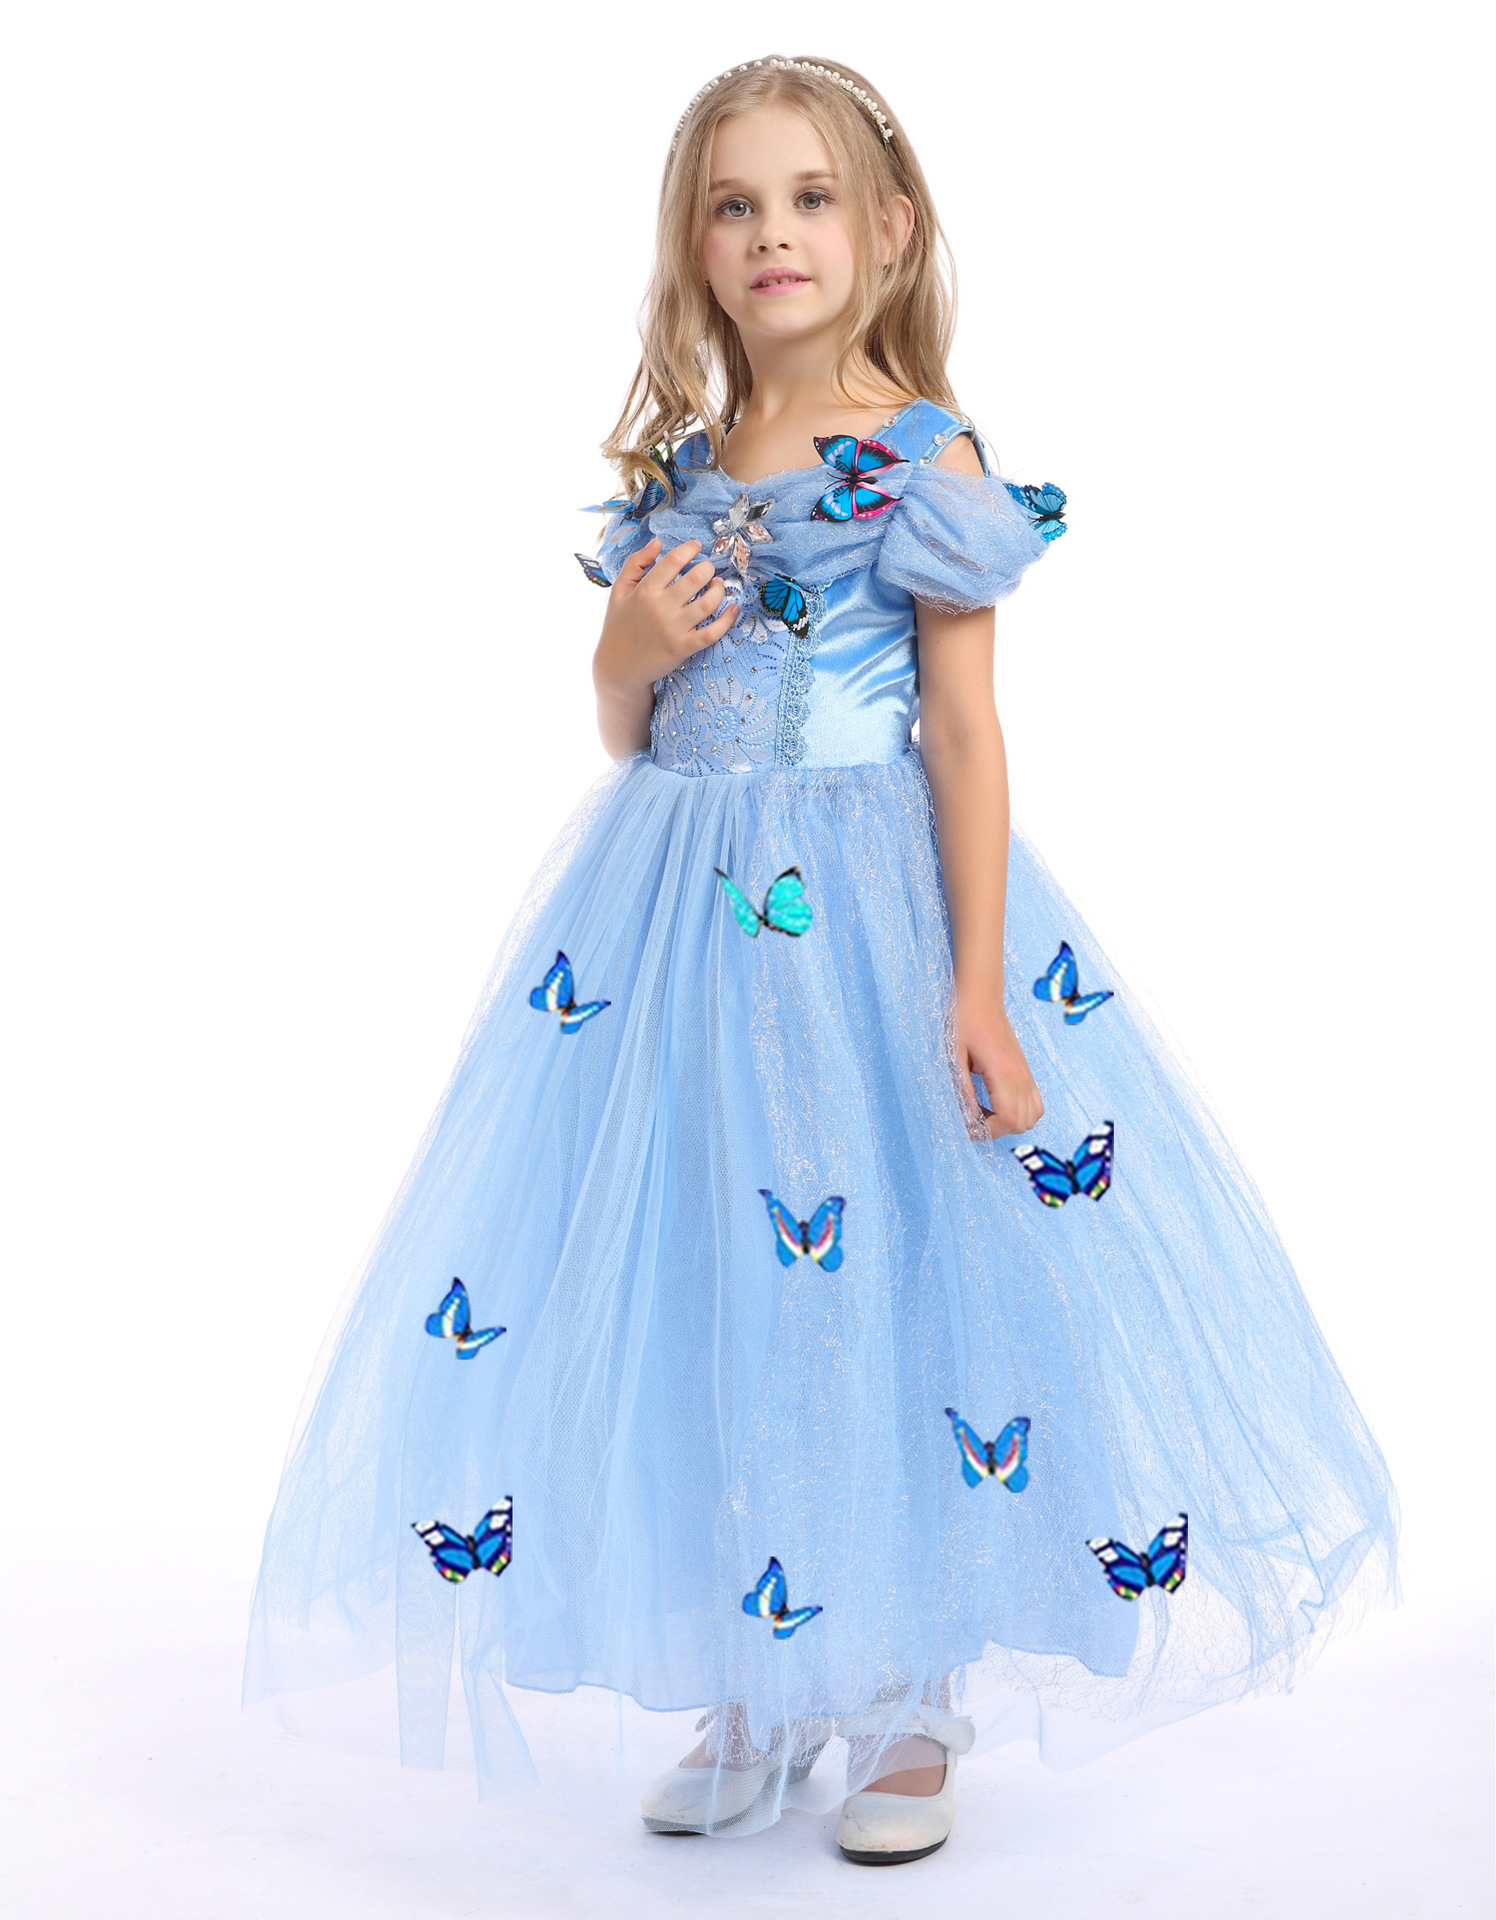 a01873f96bc blue halloween costume for kids princess little christmas gifts for  children girls cinderella dress costumes clothing baby girl